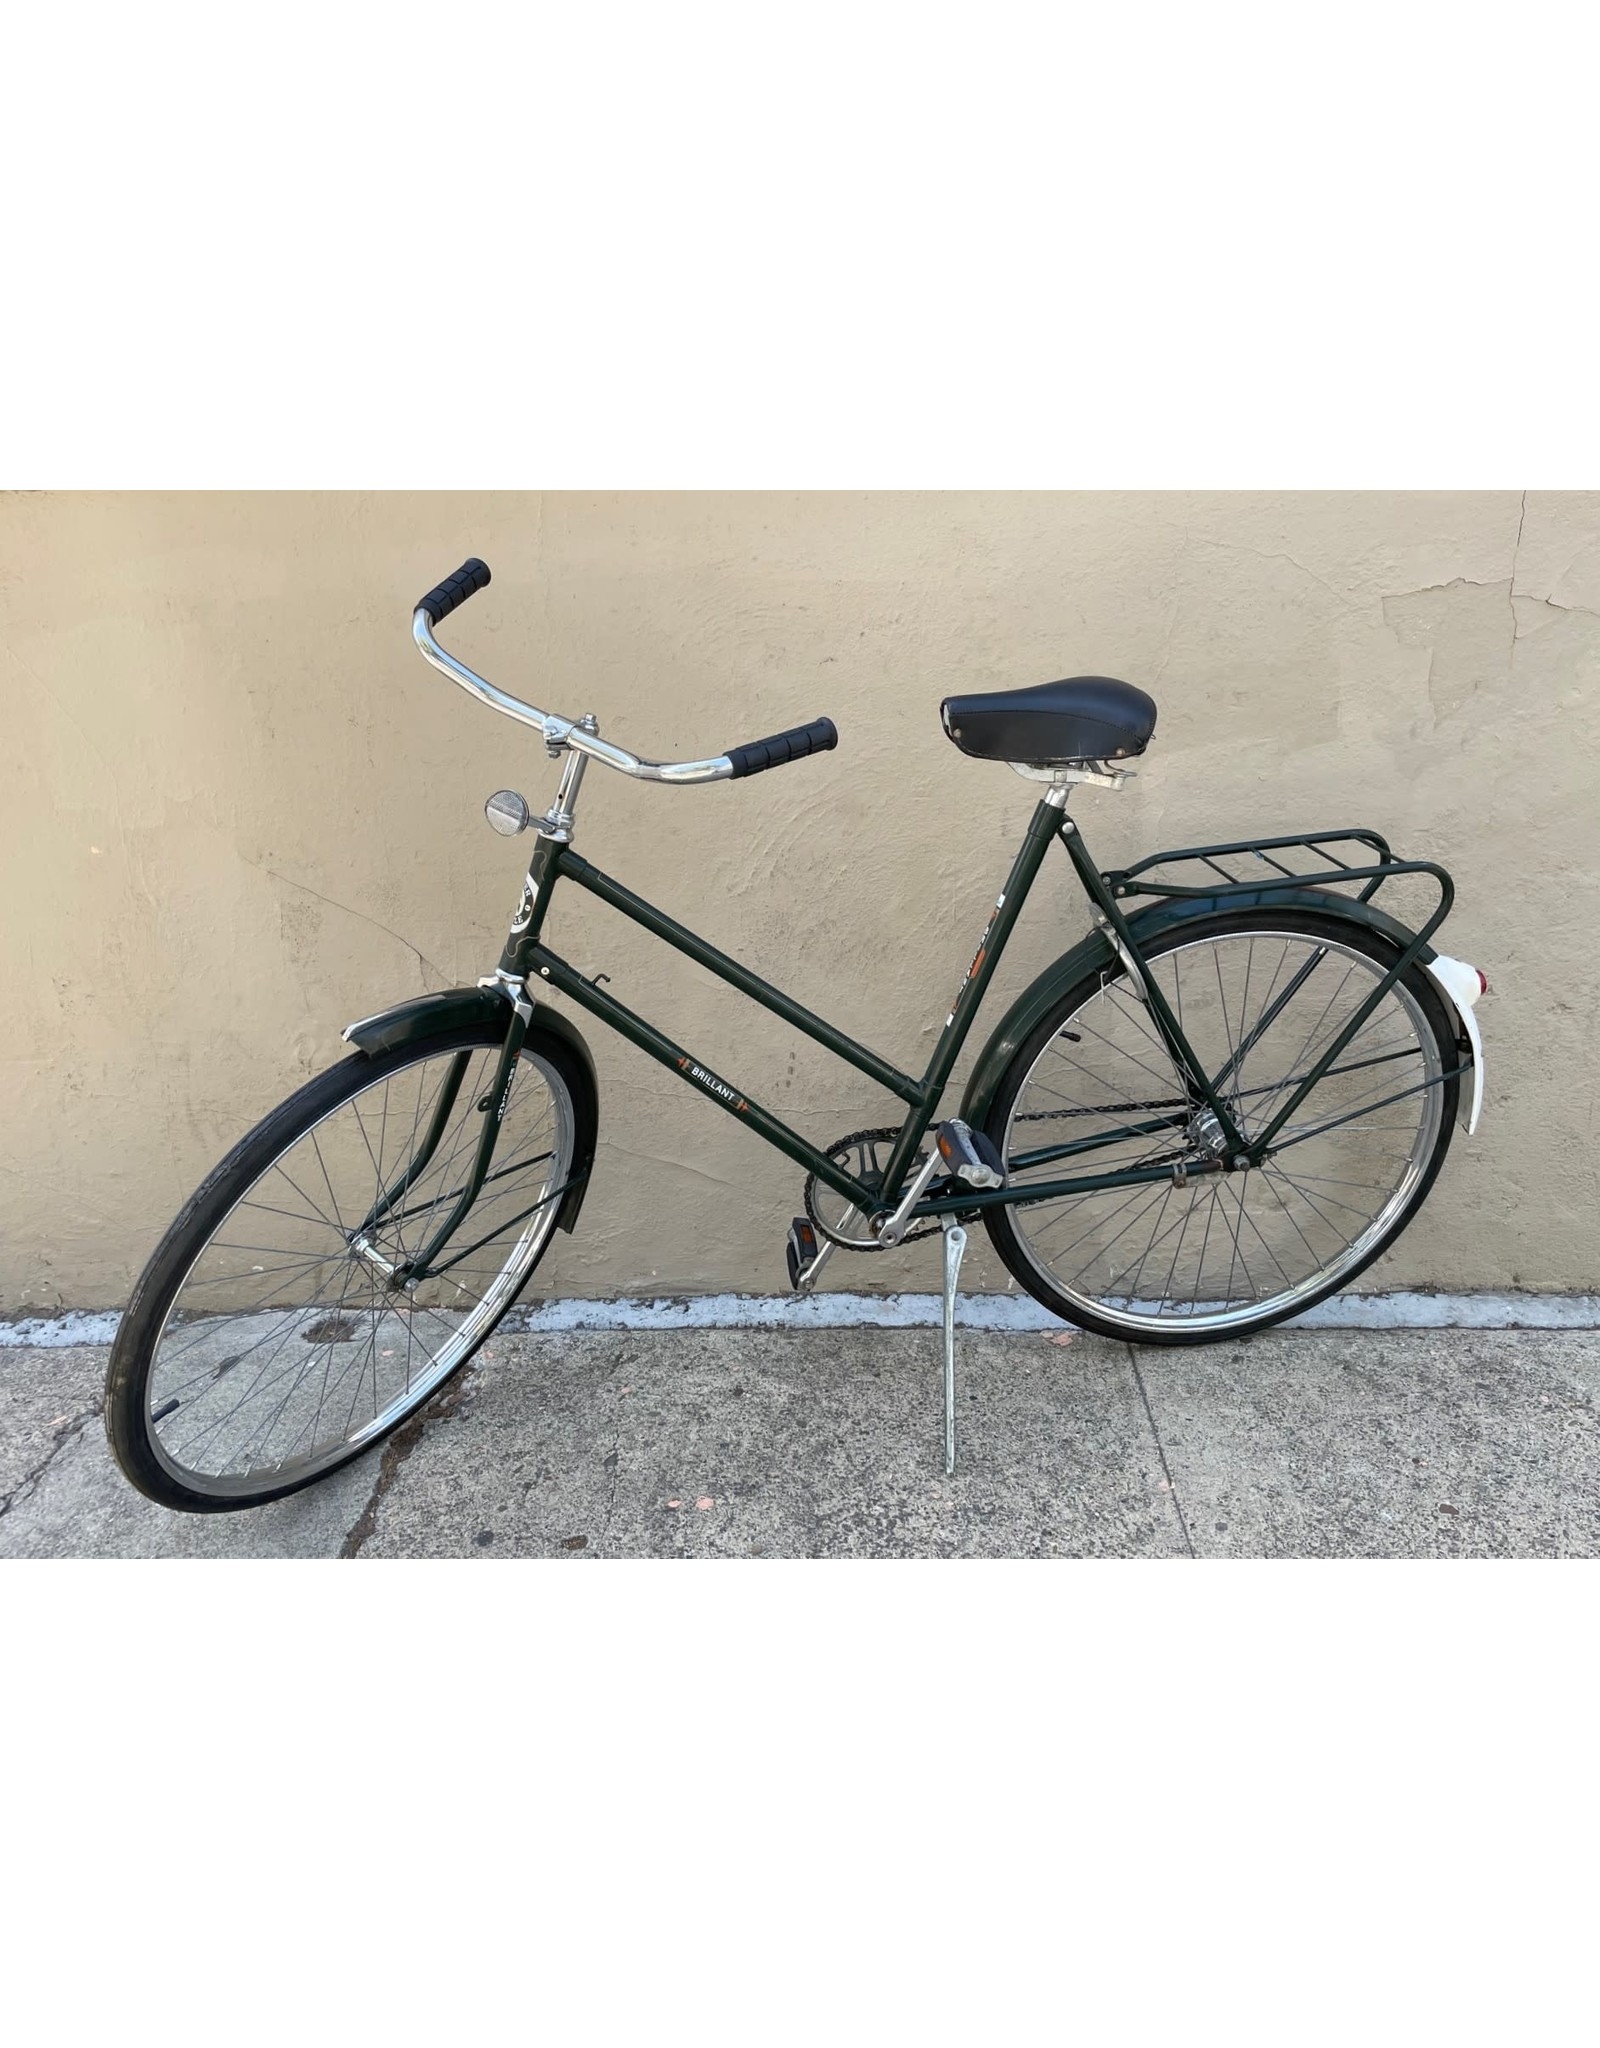 Super Style Cycles Brilliant Super Style Step-Through, Dutch Style, 22 Inches, Green